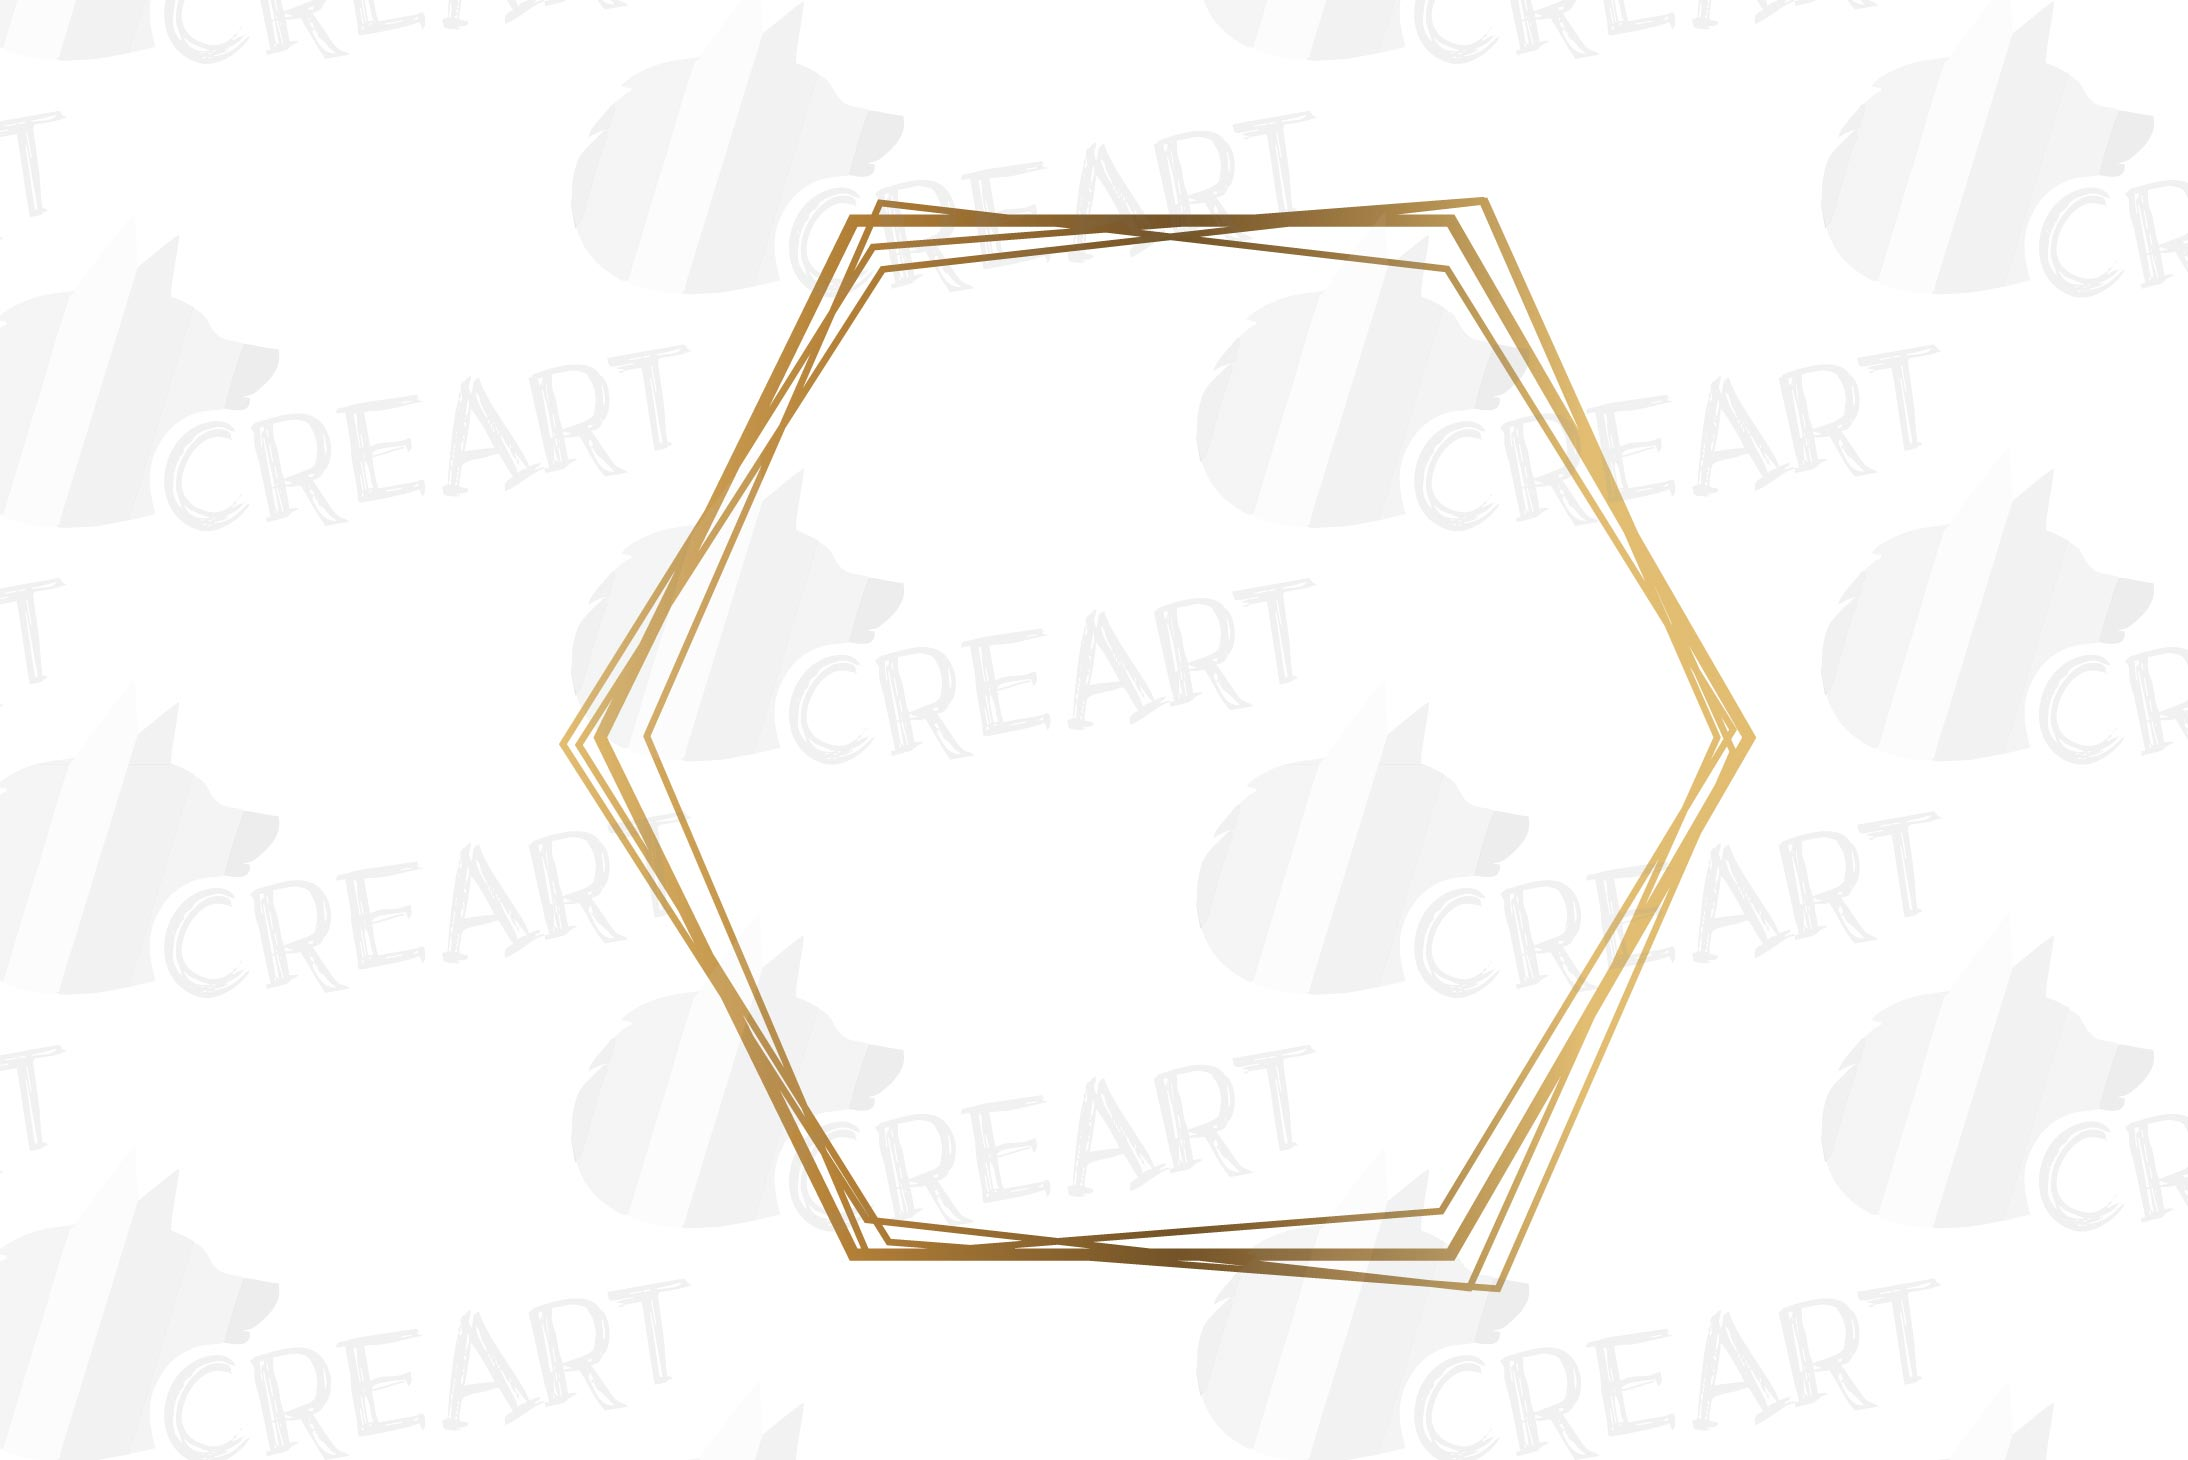 Elegant wedding geometric golden frames, lineal frames svg example image 25